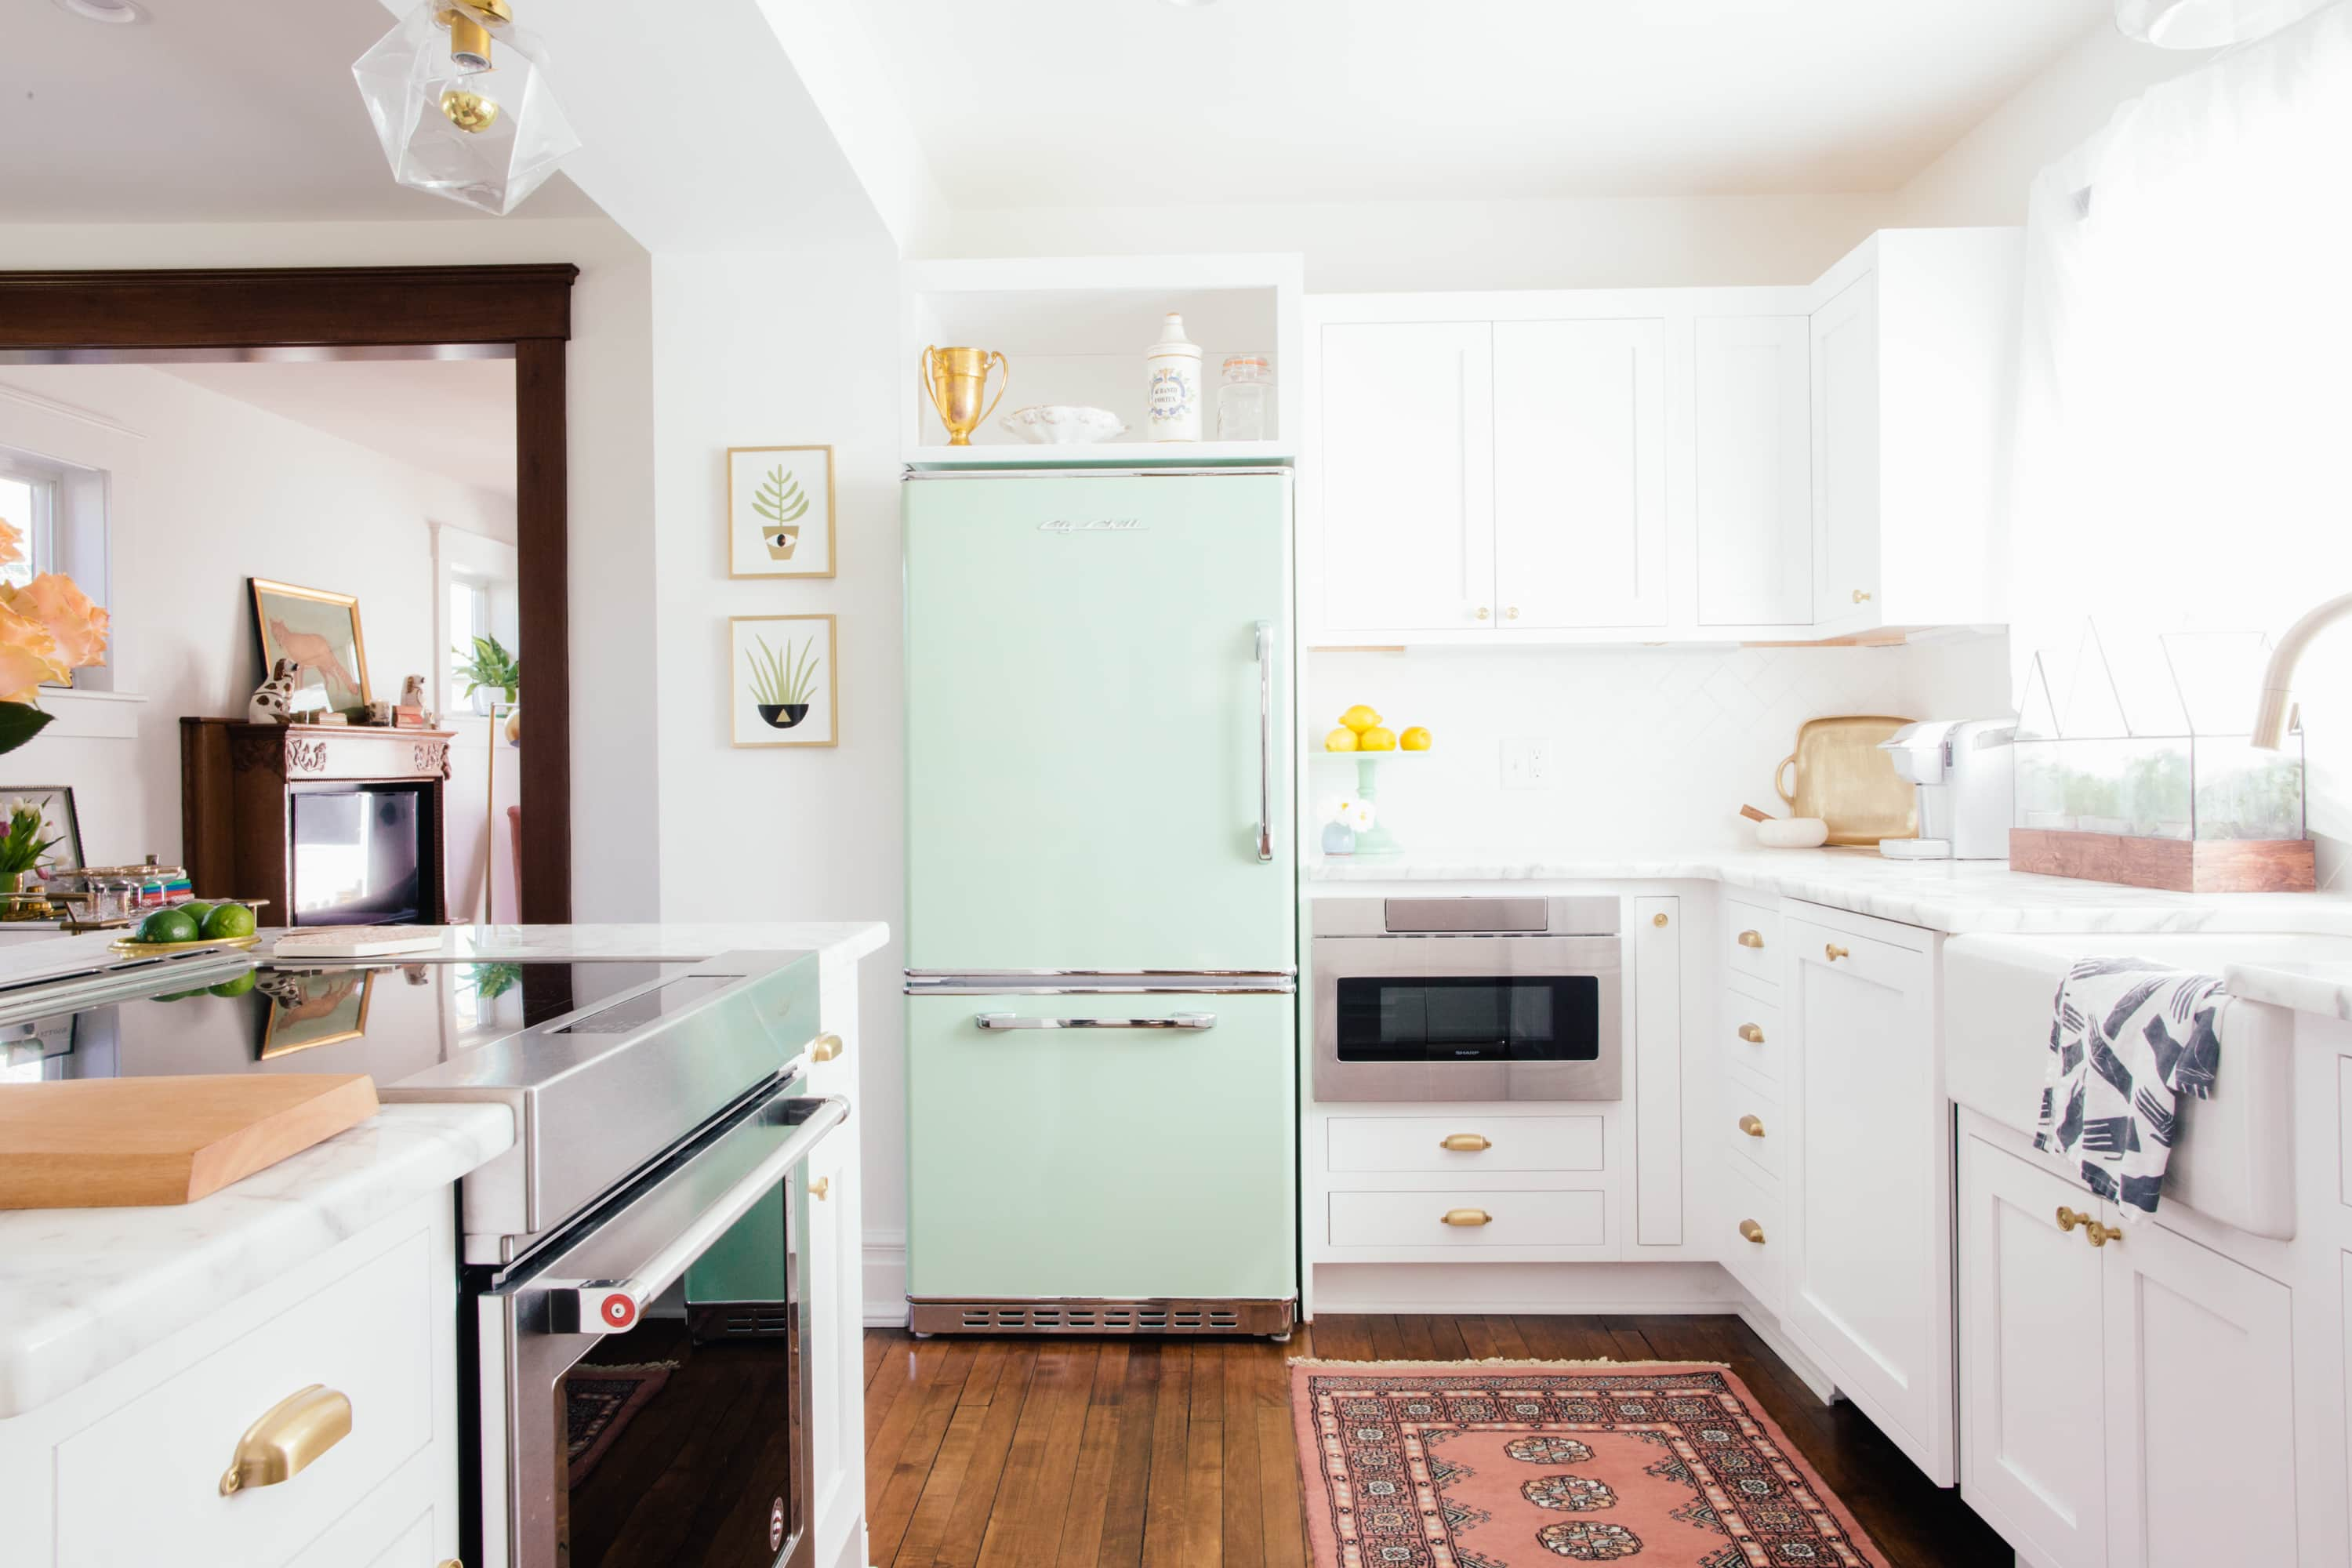 10 Gorgeous Kitchens That Prove You Need To Put A Rug In There Kitchn